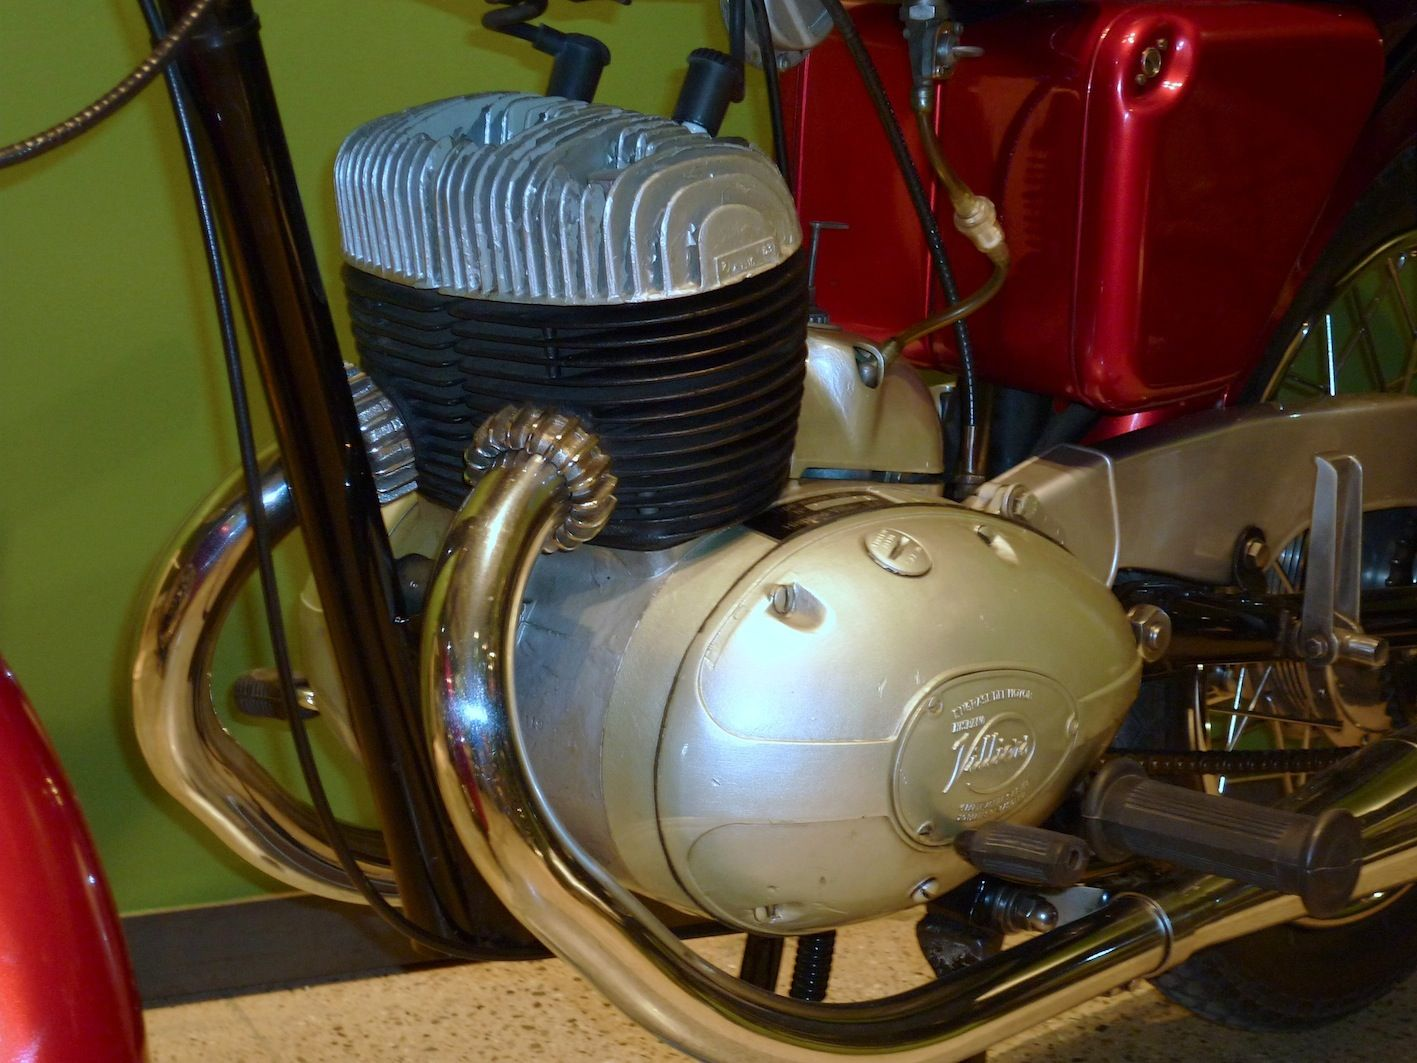 1964 Villiers 250cc Twin-Cylinder Two-Stroke Engine this one fitted